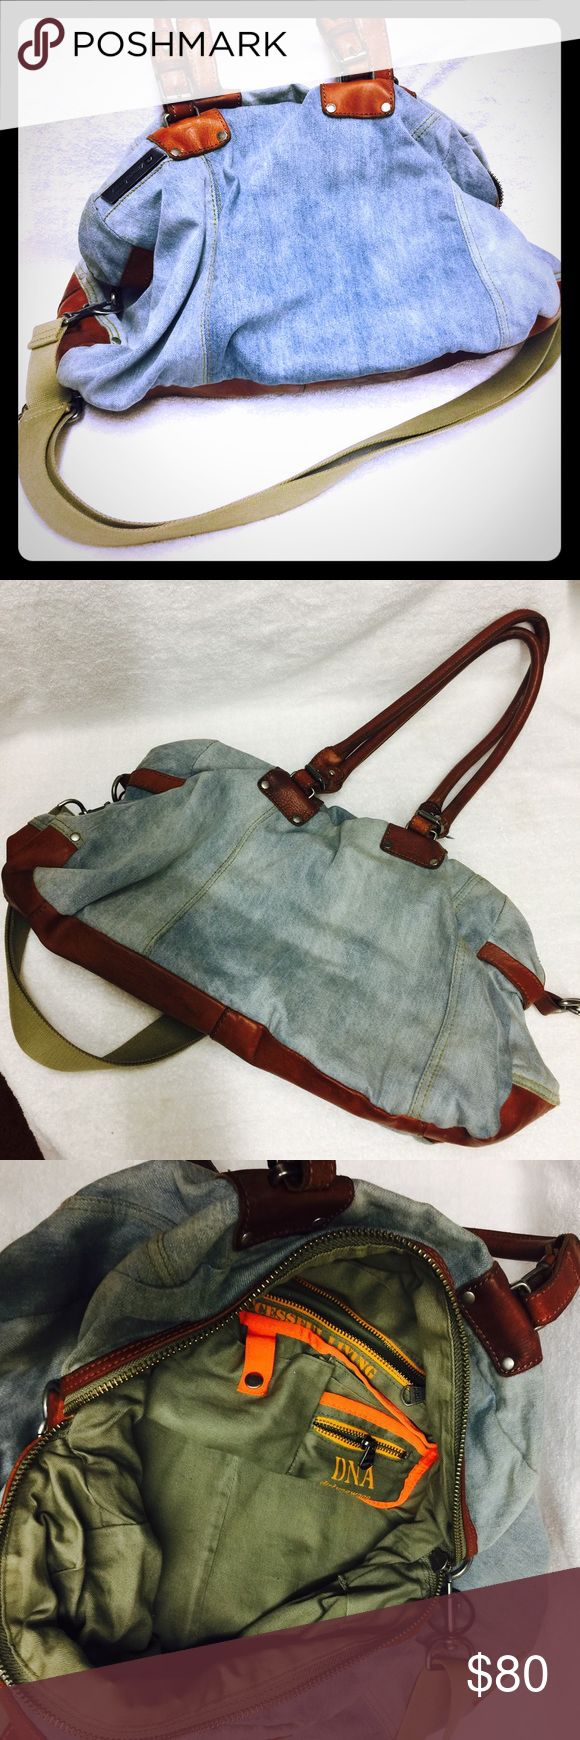 Diesel bag Pre owned diesel bag. The sign of use showed on pictures. Great condition. I'd love to answer your questions regarding to the item.  Also love to offer a discount for bundles. Feel free to just make an offer if you like it. Thanks for checking my closet, hope you'll find things you like here. Please ask all questions before actually purchasing it. I always ship safely and quickly. Diesel Bags Crossbody Bags